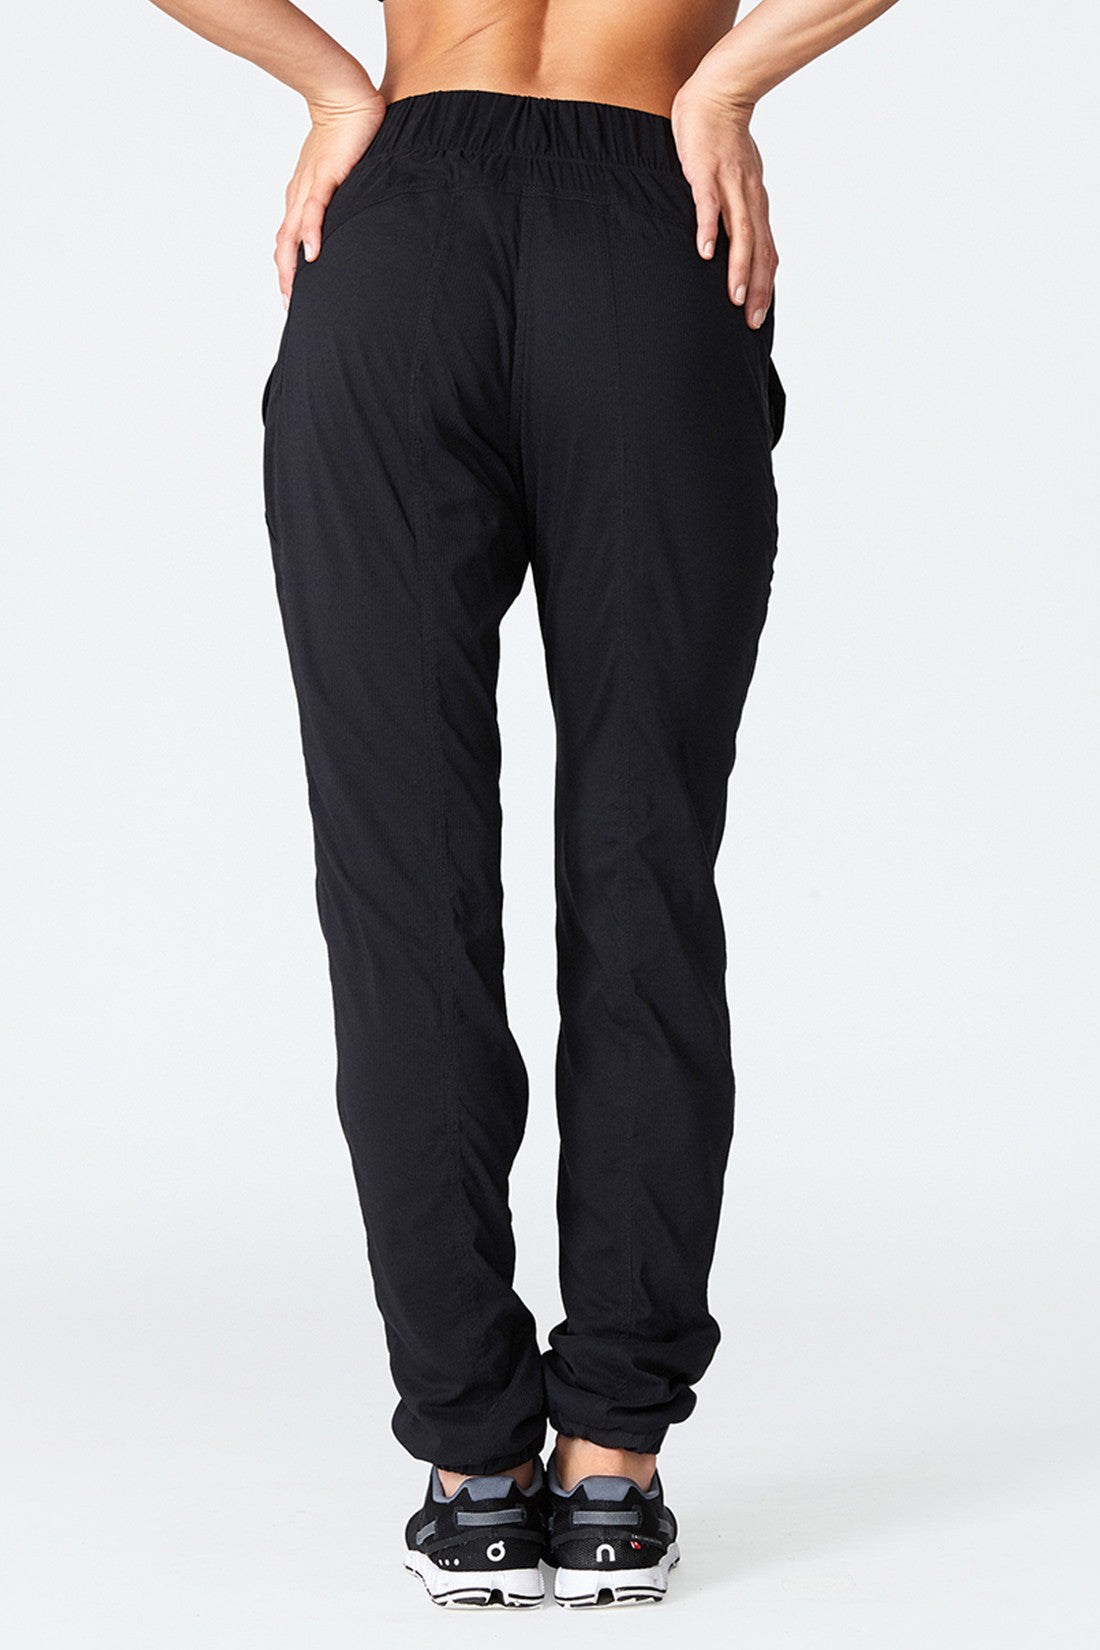 Amelia Pant - Black NoirJogger, Comfortable, Jogging, In and out, Flat stomach, All year around pant, all sports, Amelia Pant - Black Noir